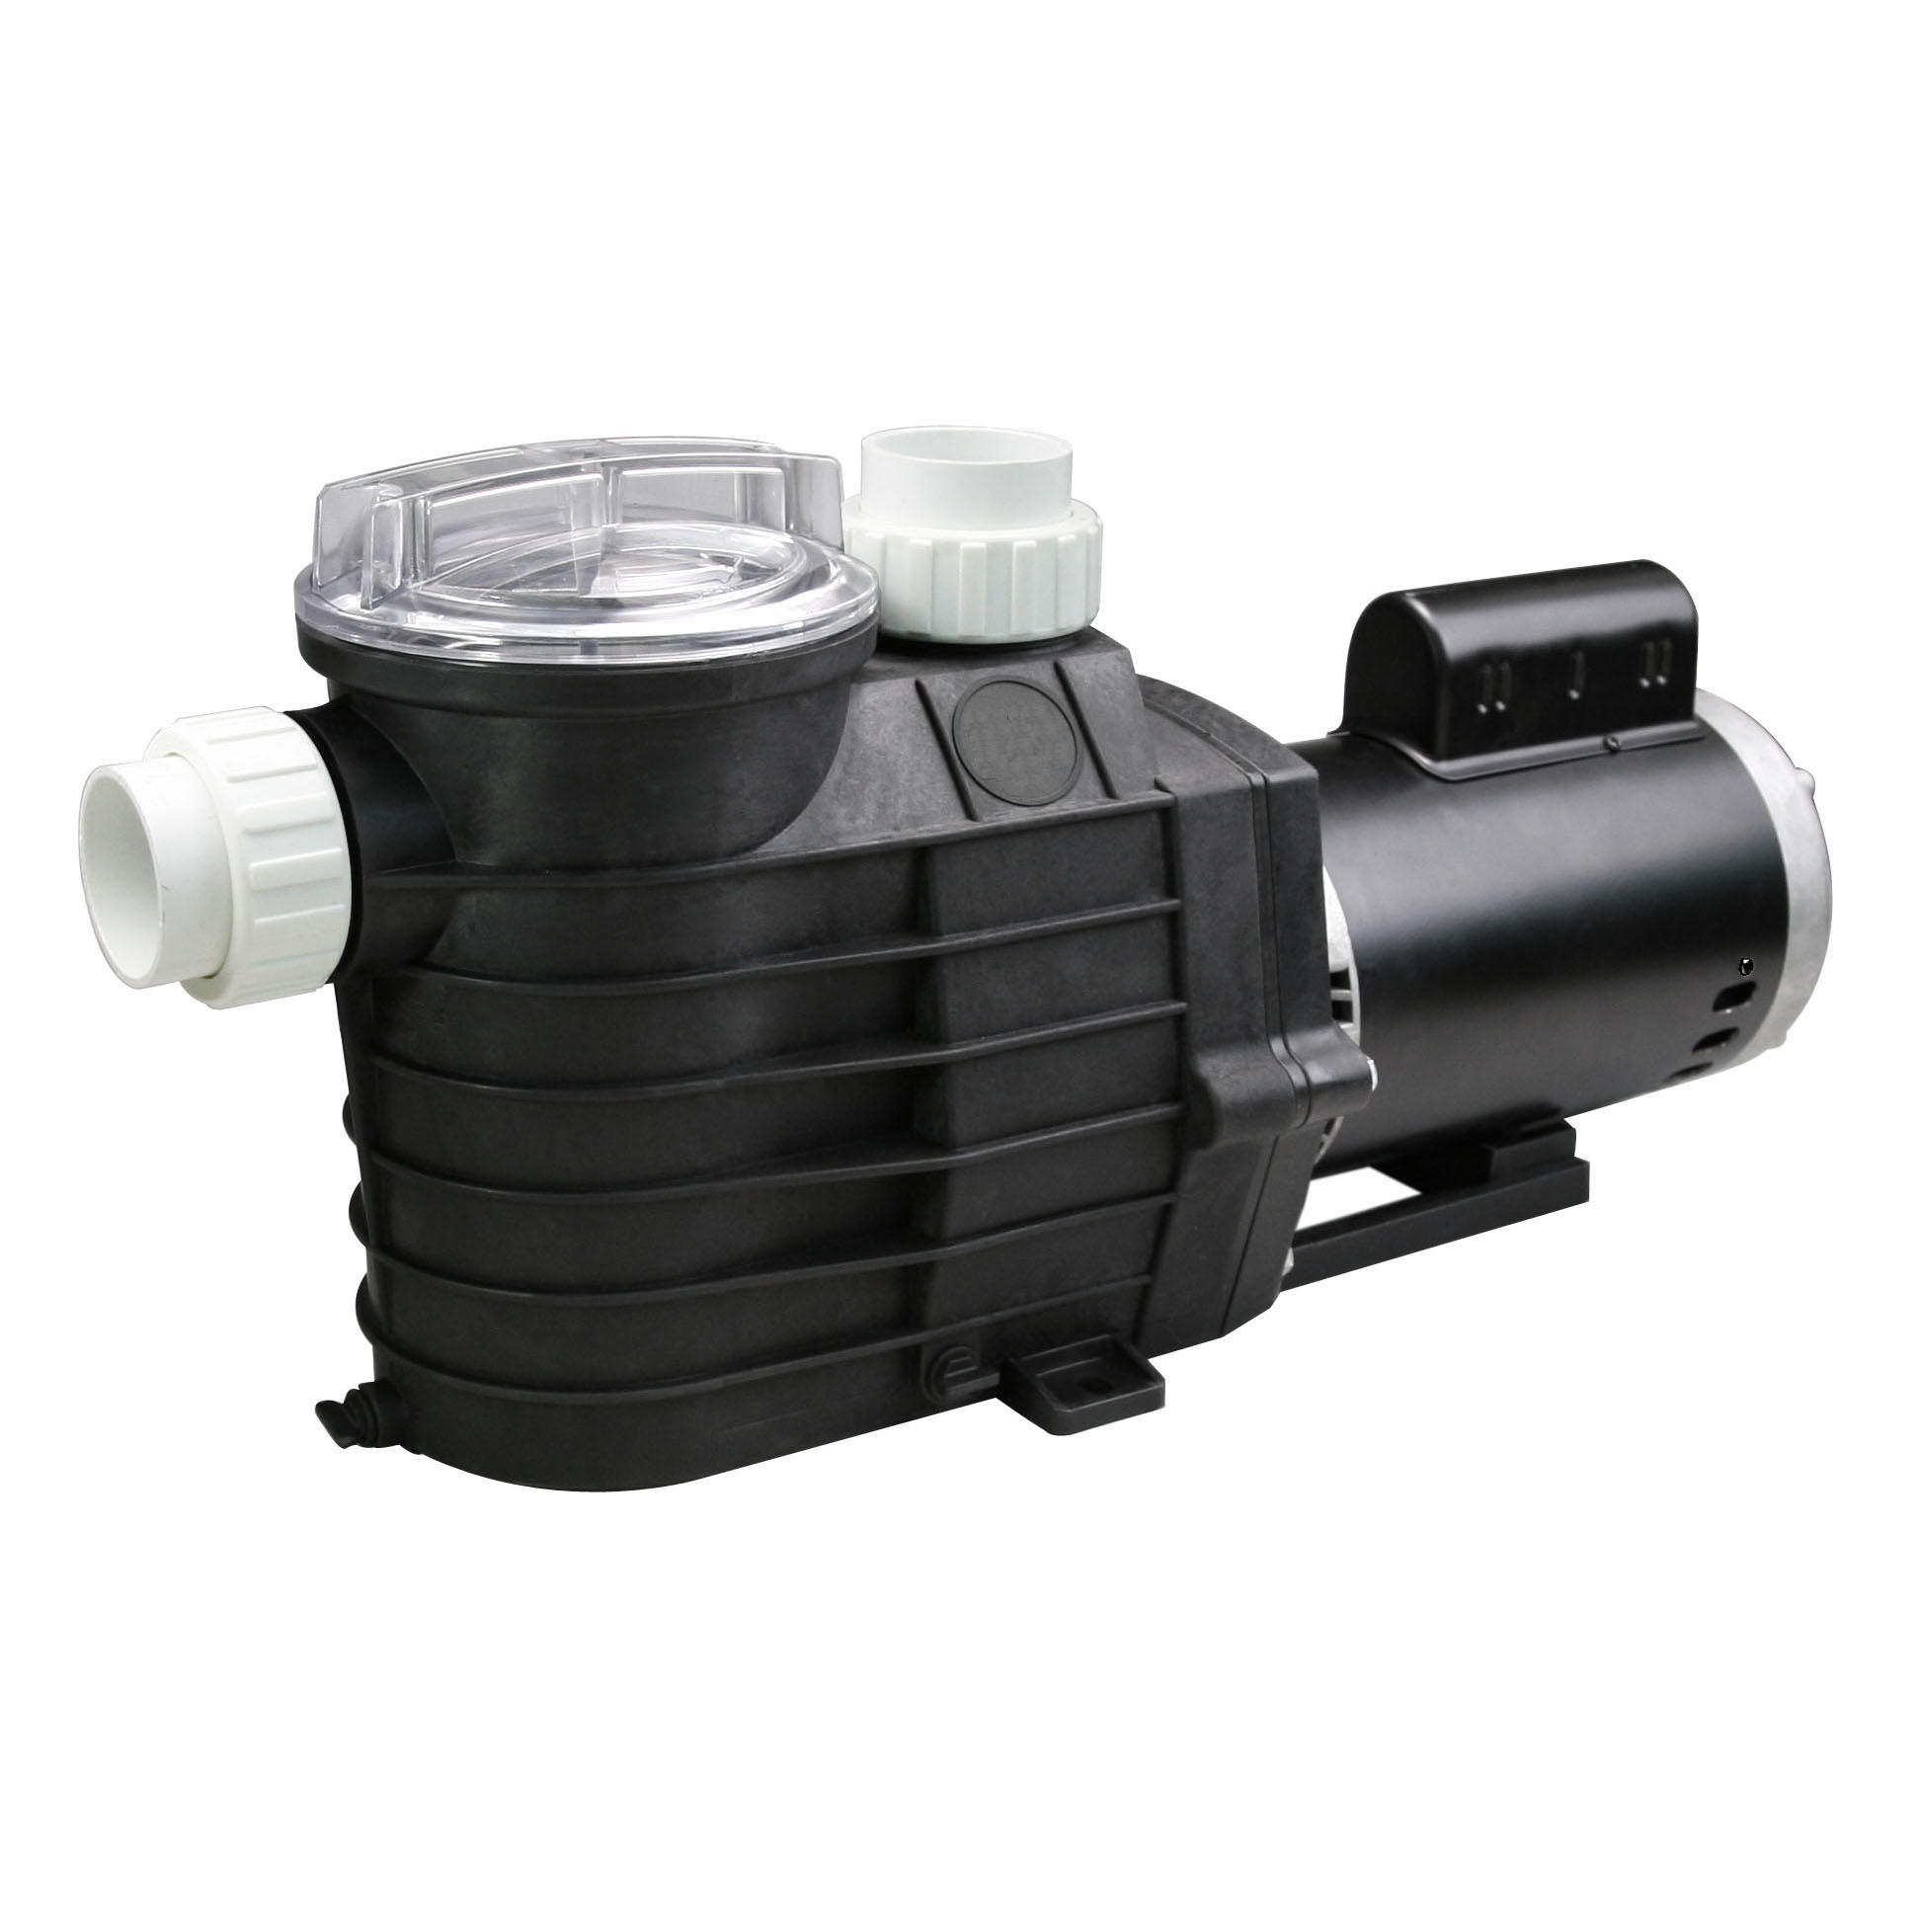 New variable speed pool pump cost pool supply for SPA pump-1